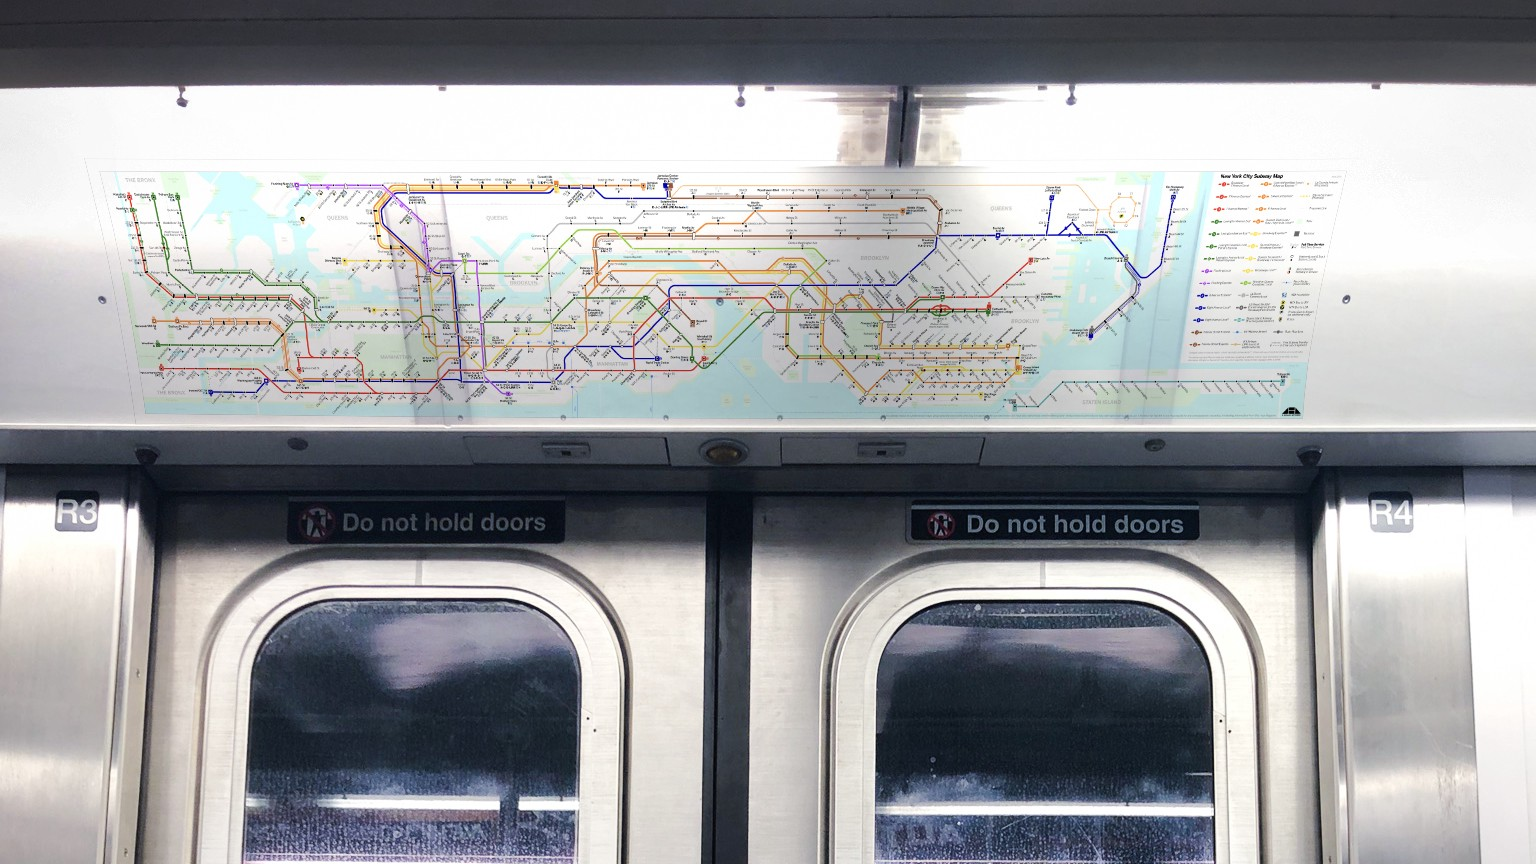 Subway Map For New York City.Rethinking The New York City Subway Map Jun Seong Ahn Medium